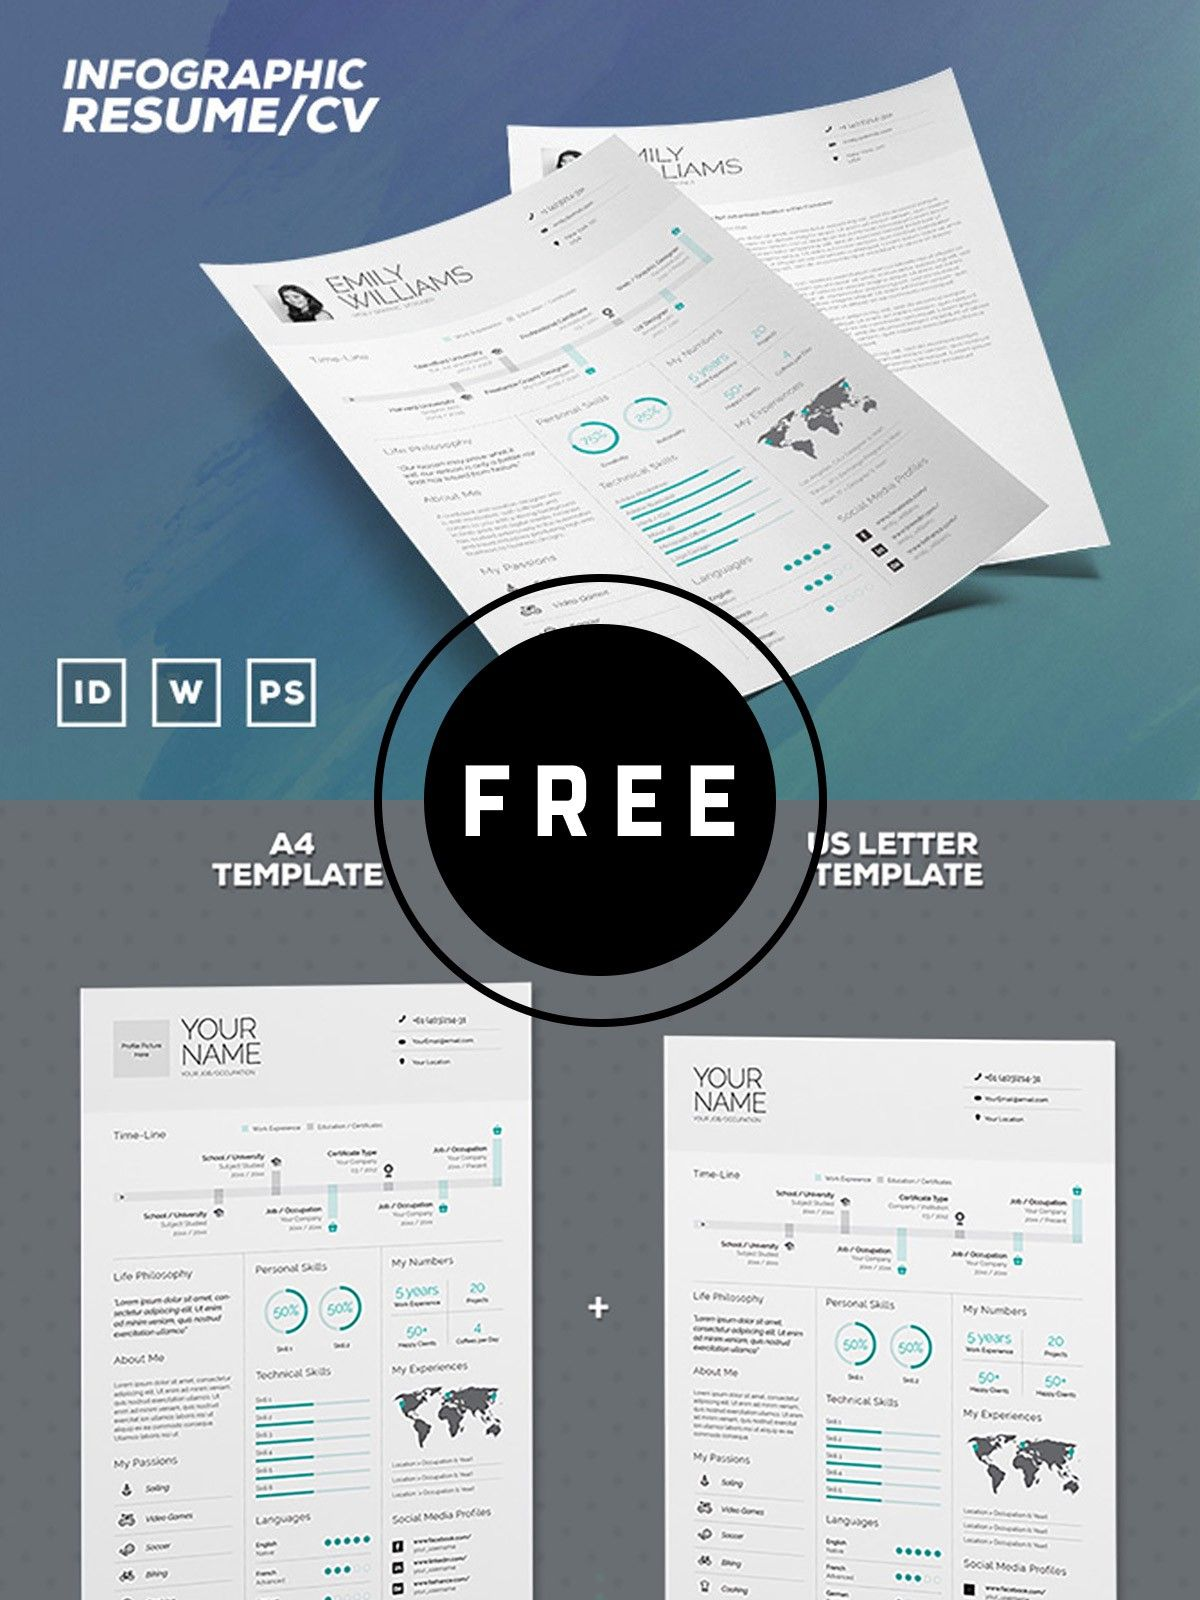 100 Free Best Resume Templates For 2019 Infographic